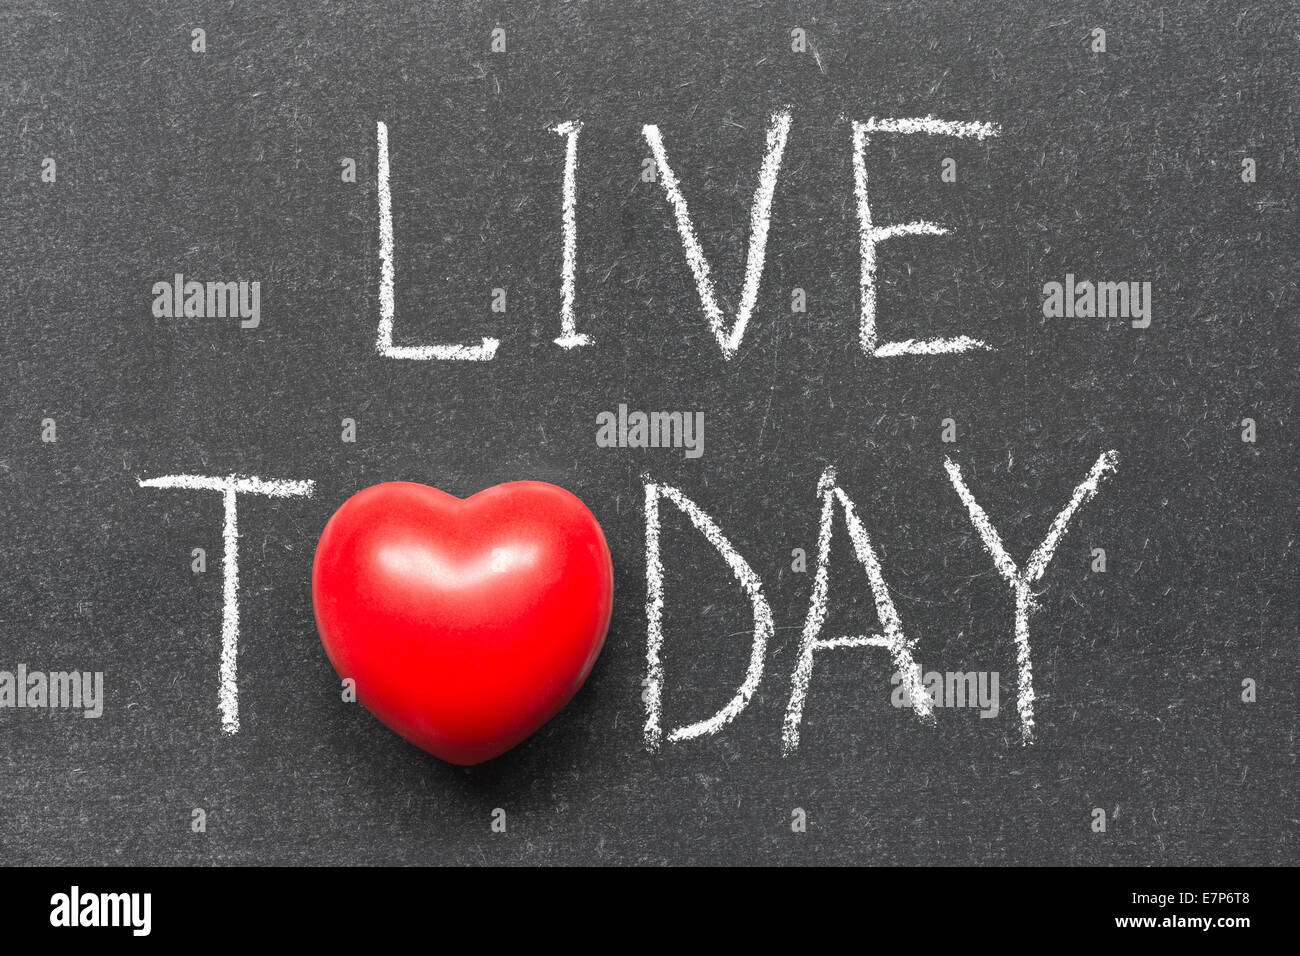 live today phrase handwritten on chalkboard with heart symbol instead of O - Stock Image